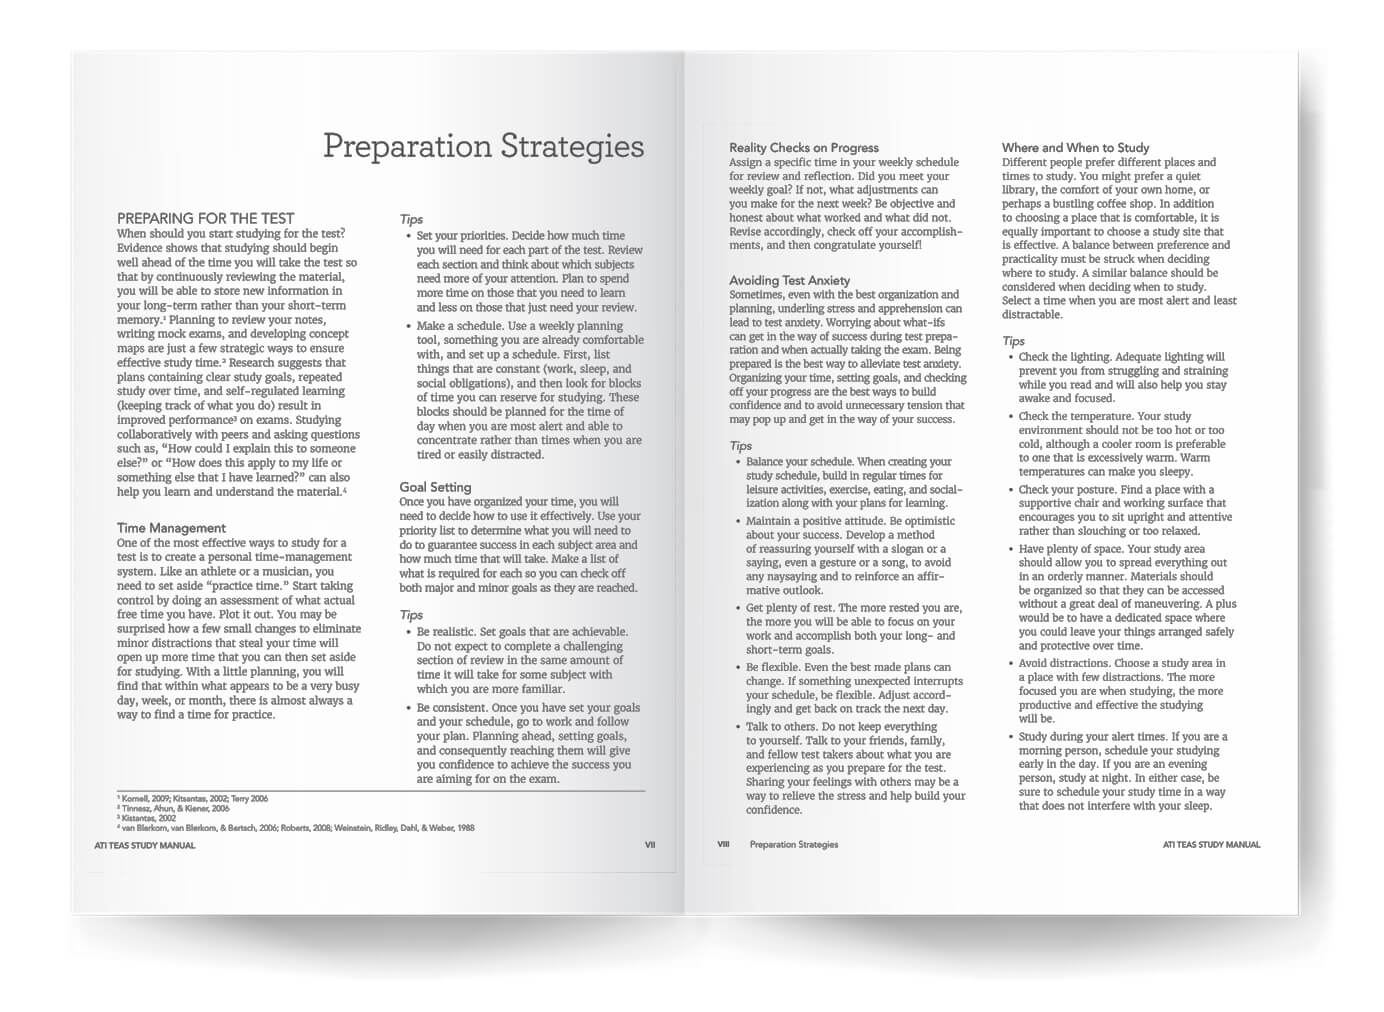 ATI TEAS Study Manual - For Students | ATI